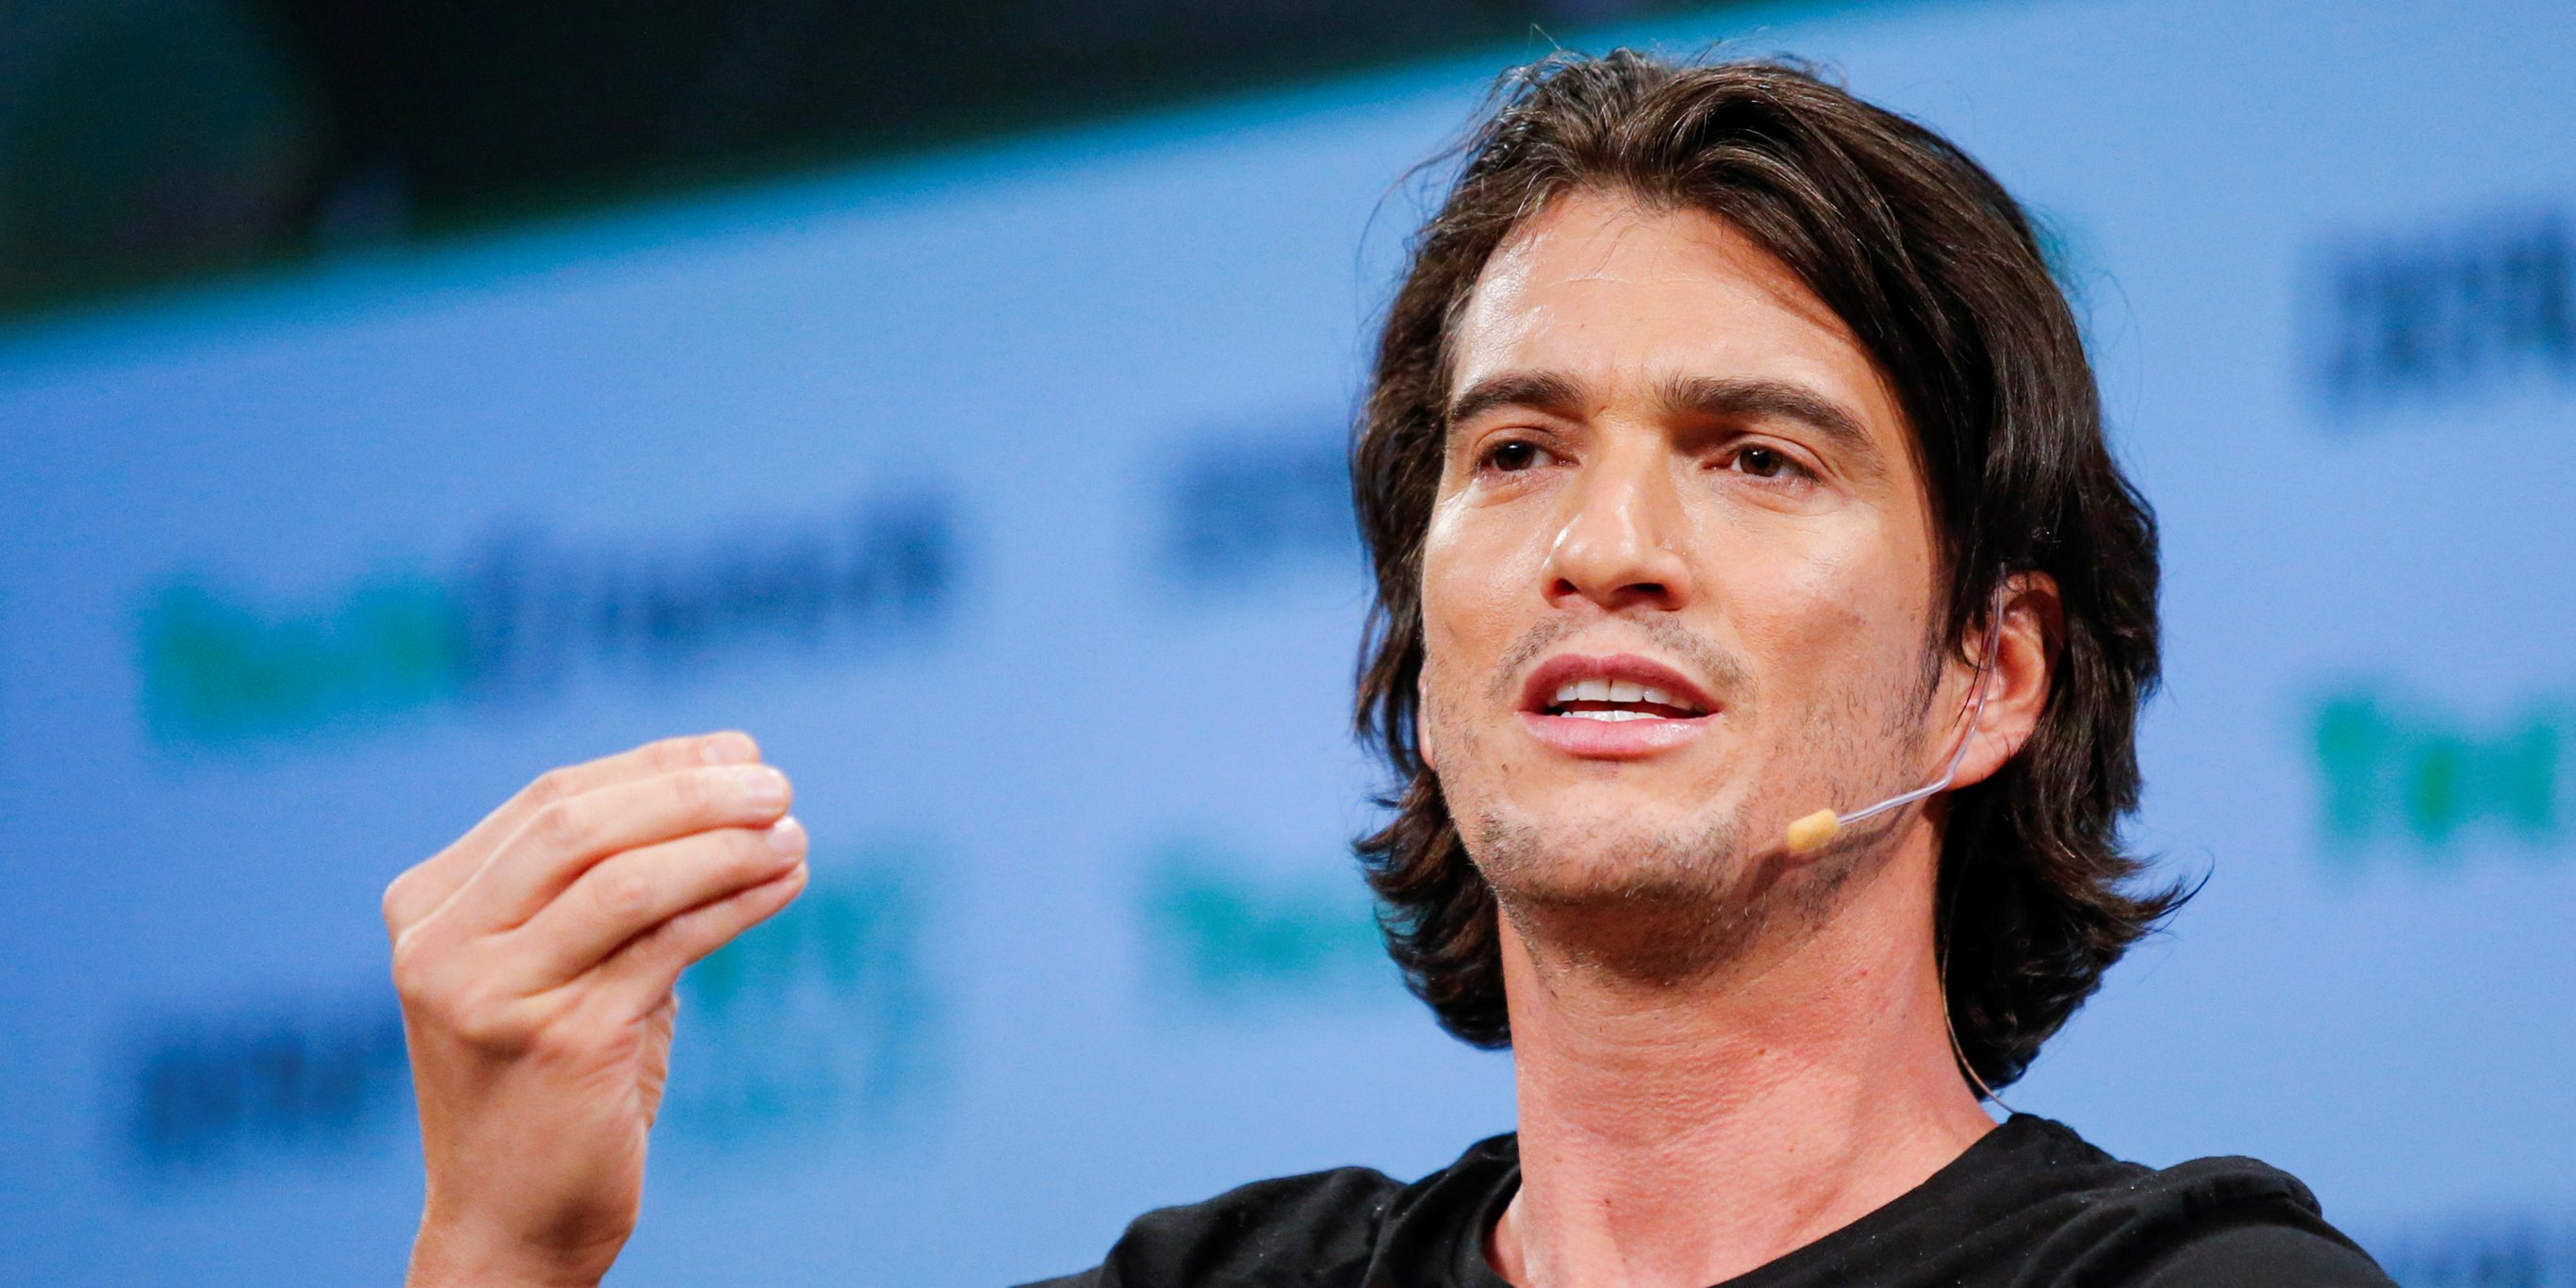 The career rise of Adam Neumann, the controversial WeWork cofounder who just stepped down as CEO